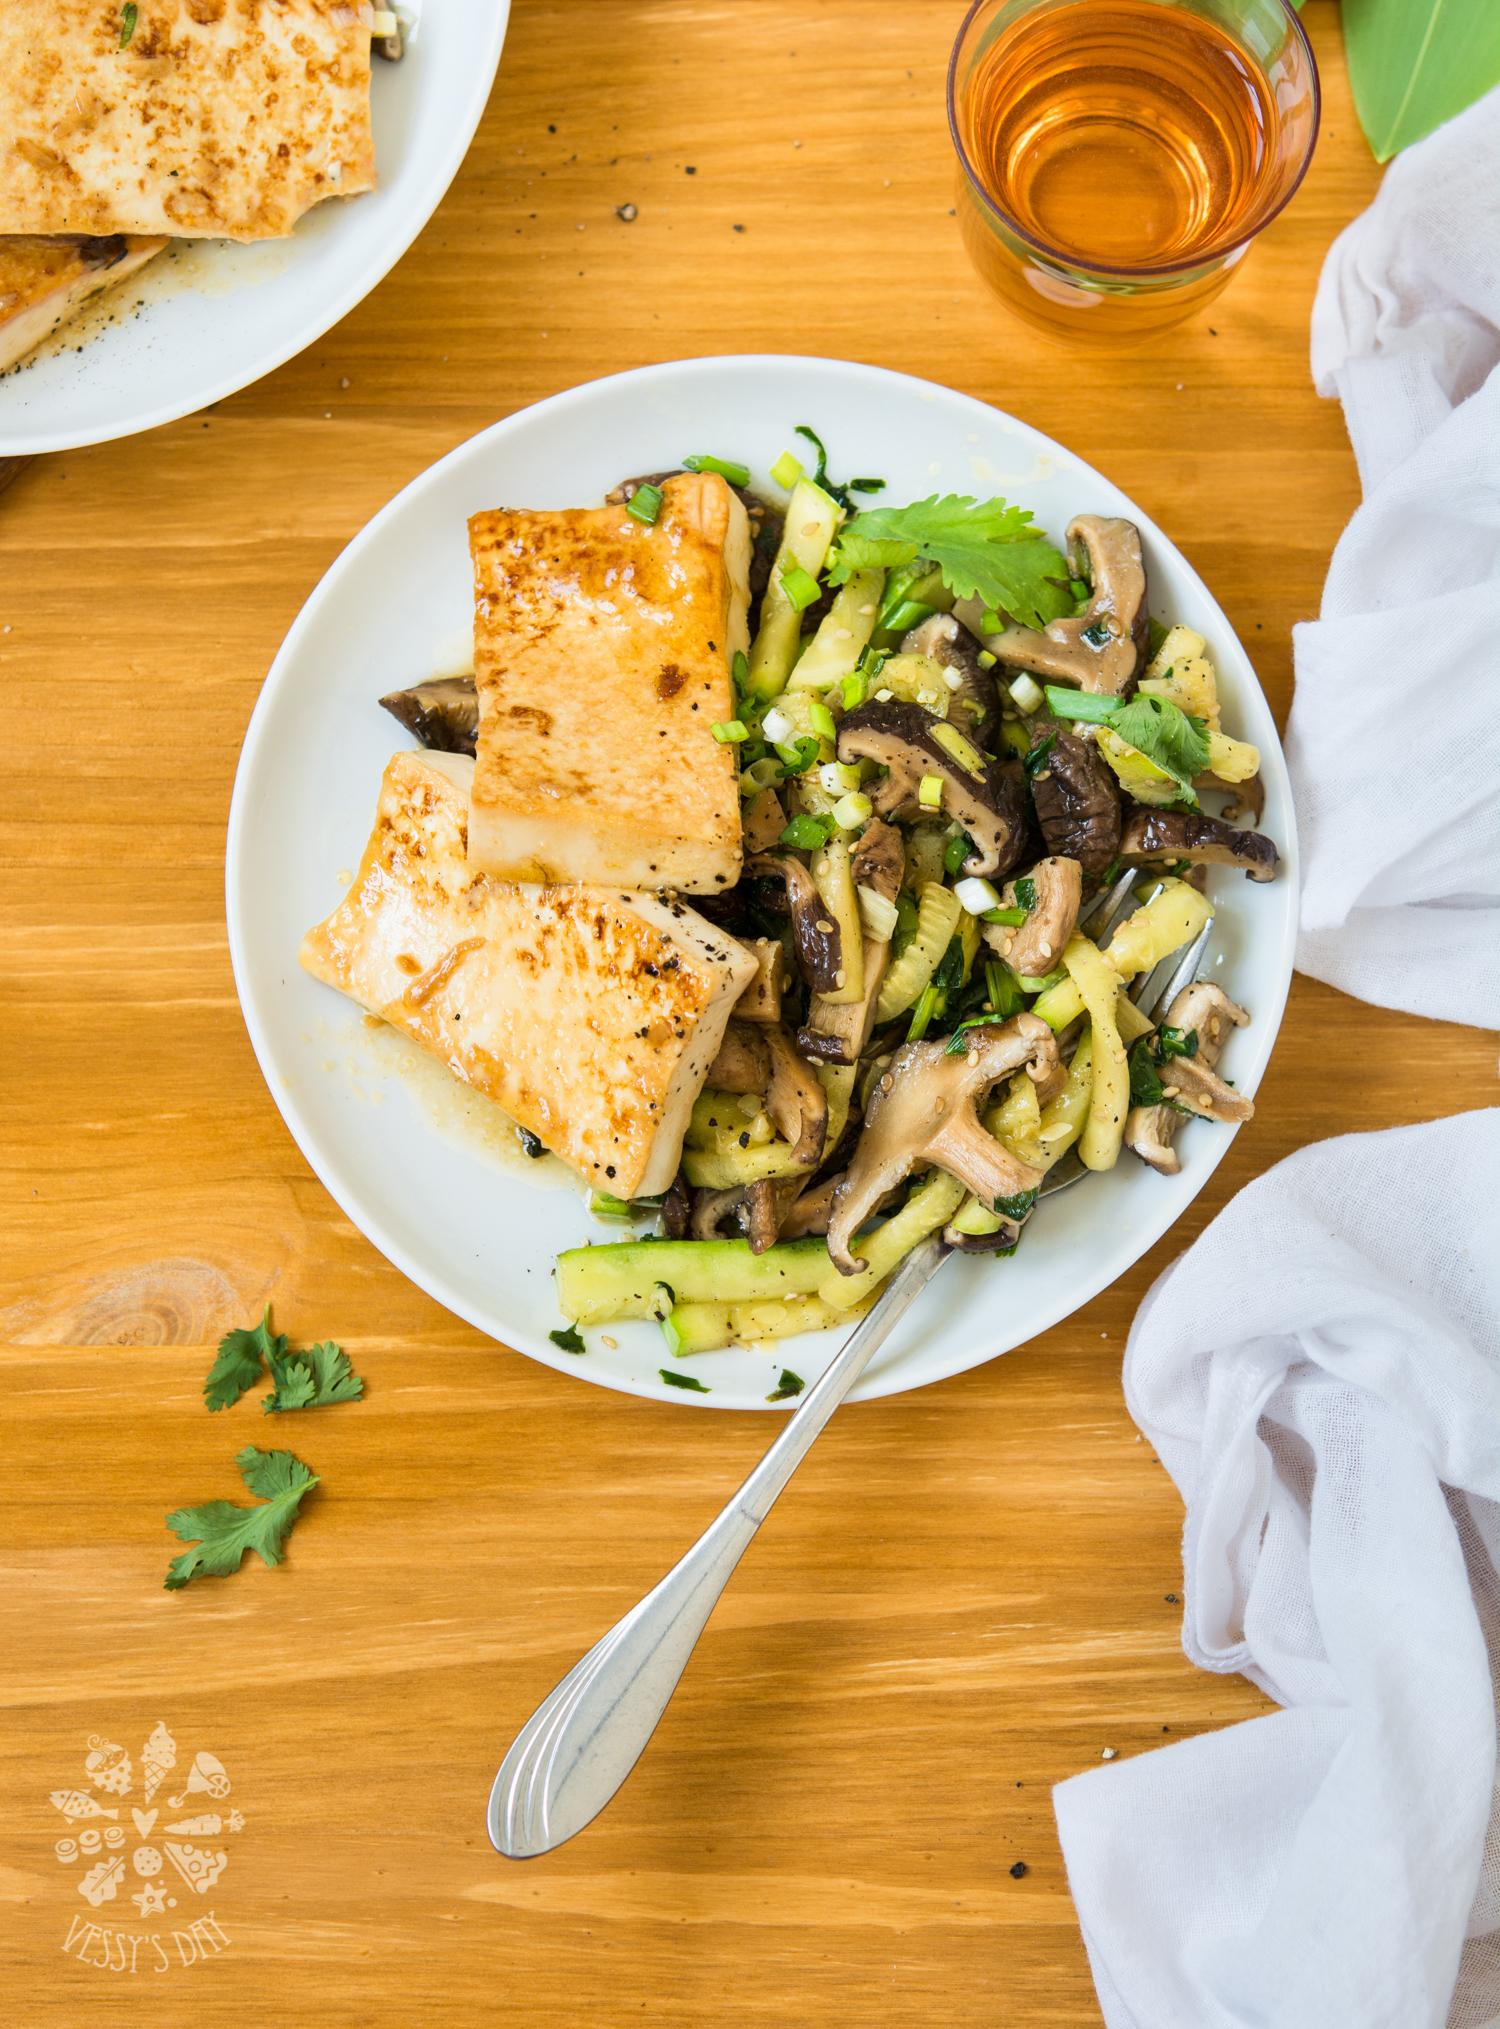 Mirin glazed tofu with shiitake and zucchini